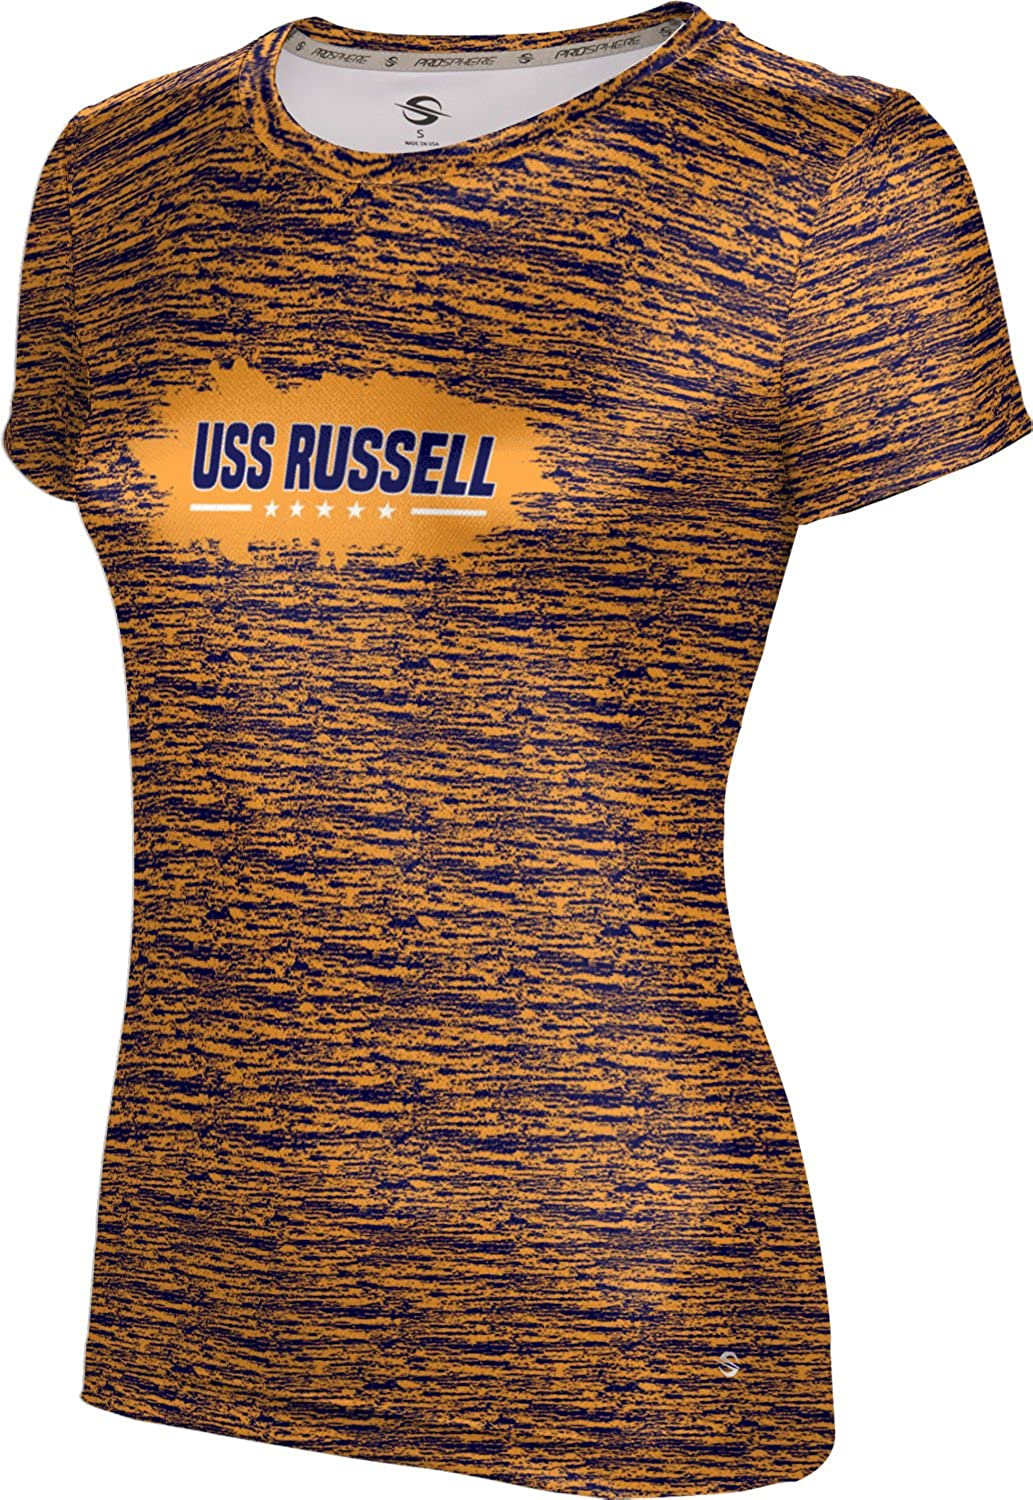 ProSphere Women's USS Russell Military Brushed Tech Tee